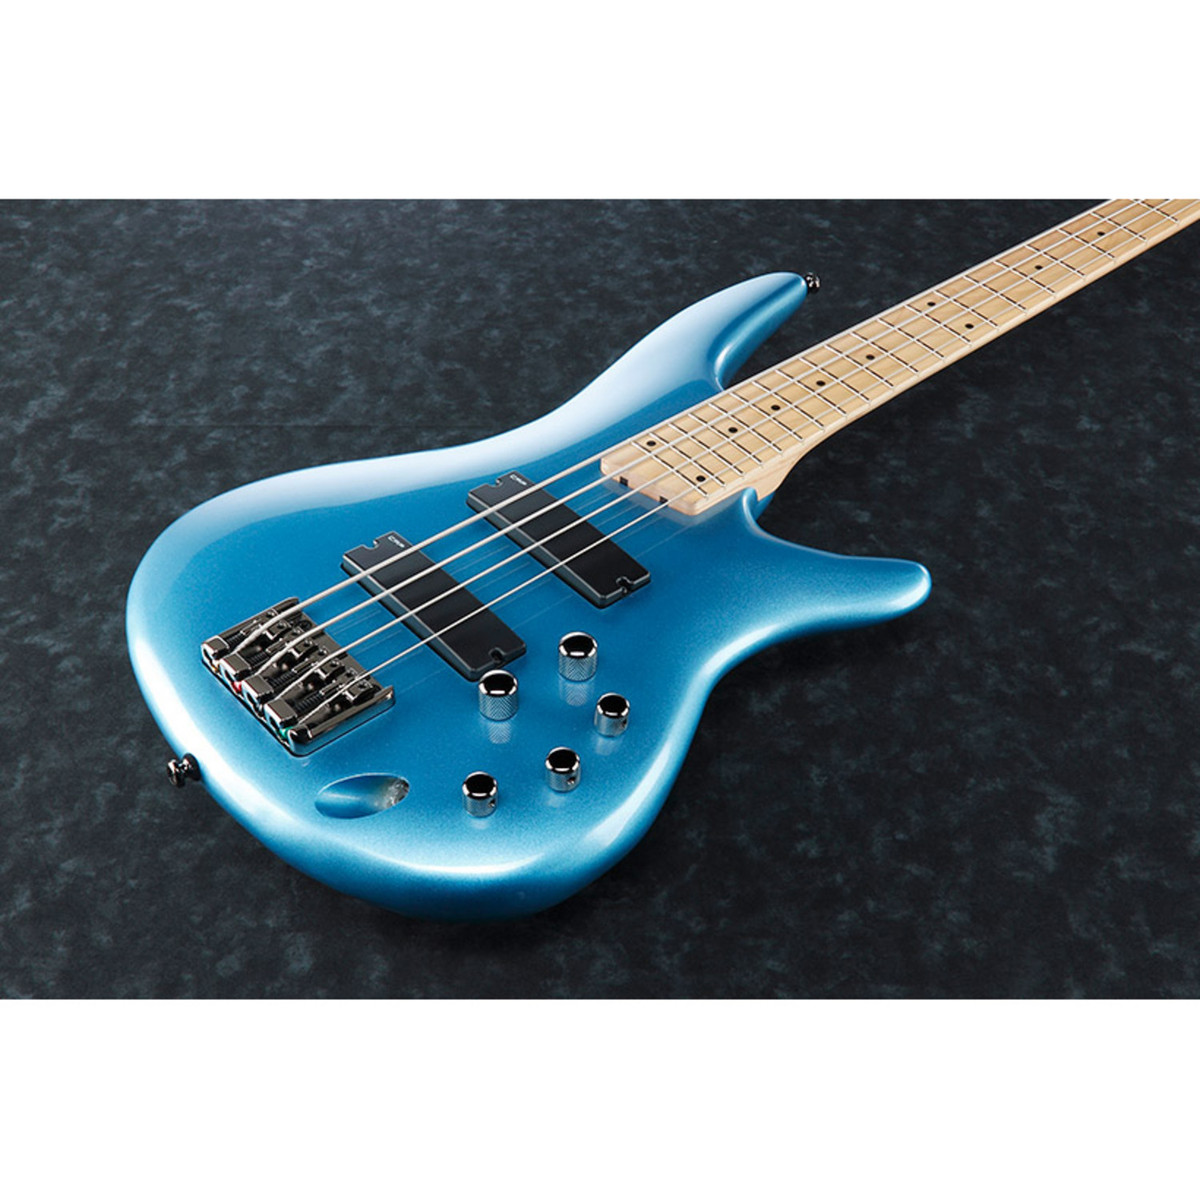 Ibanez SR300M Bass Guitar, Soda Blue - Ex Demo at Gear4music.com